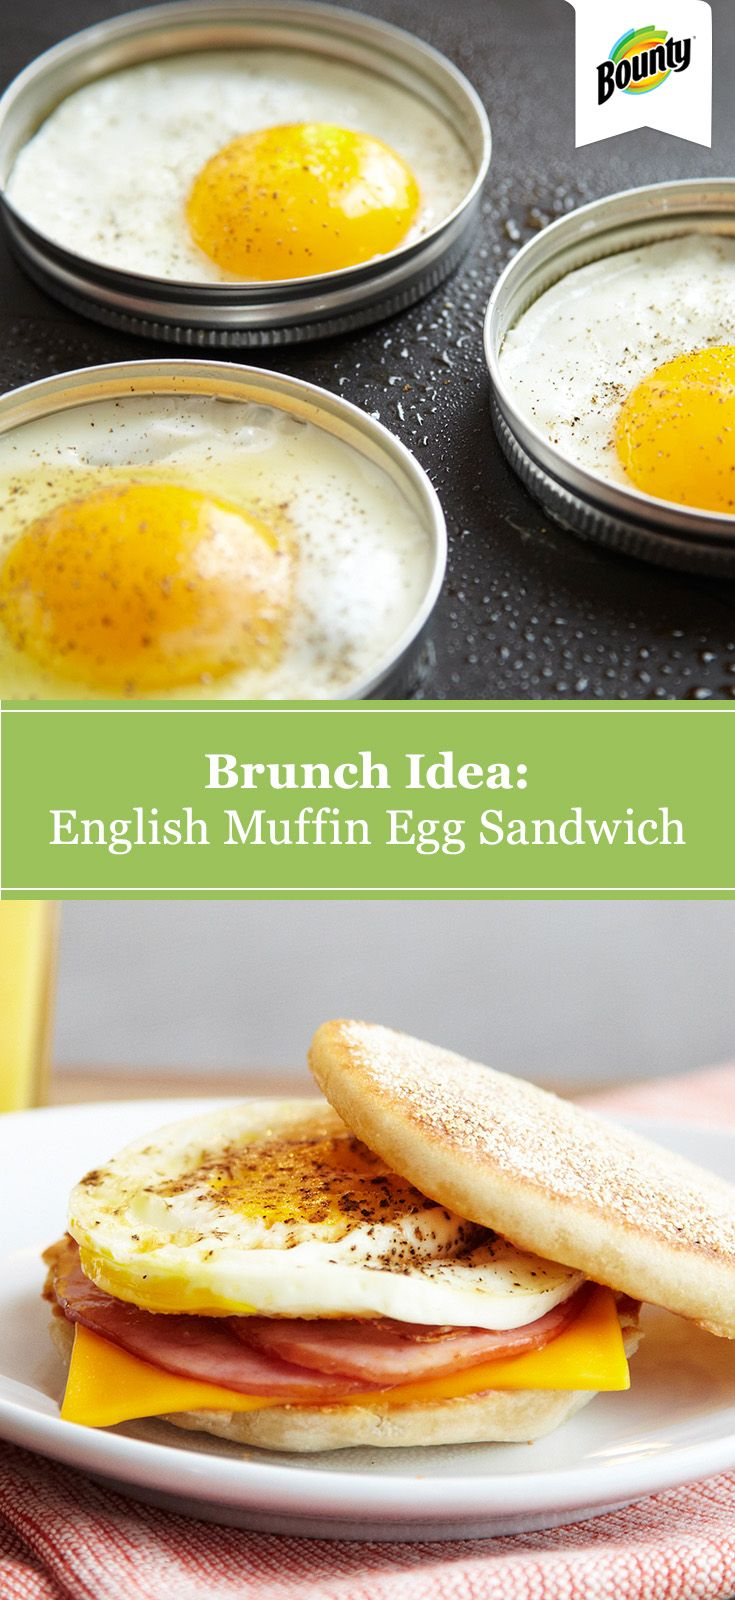 This English muffin egg sandwich recipe makes a quick and easy on-the-go breakfast. It's also a great brunch idea! Tip: You can use a Mason jar ring mold to create perfectly round, evenly cooked eggs.